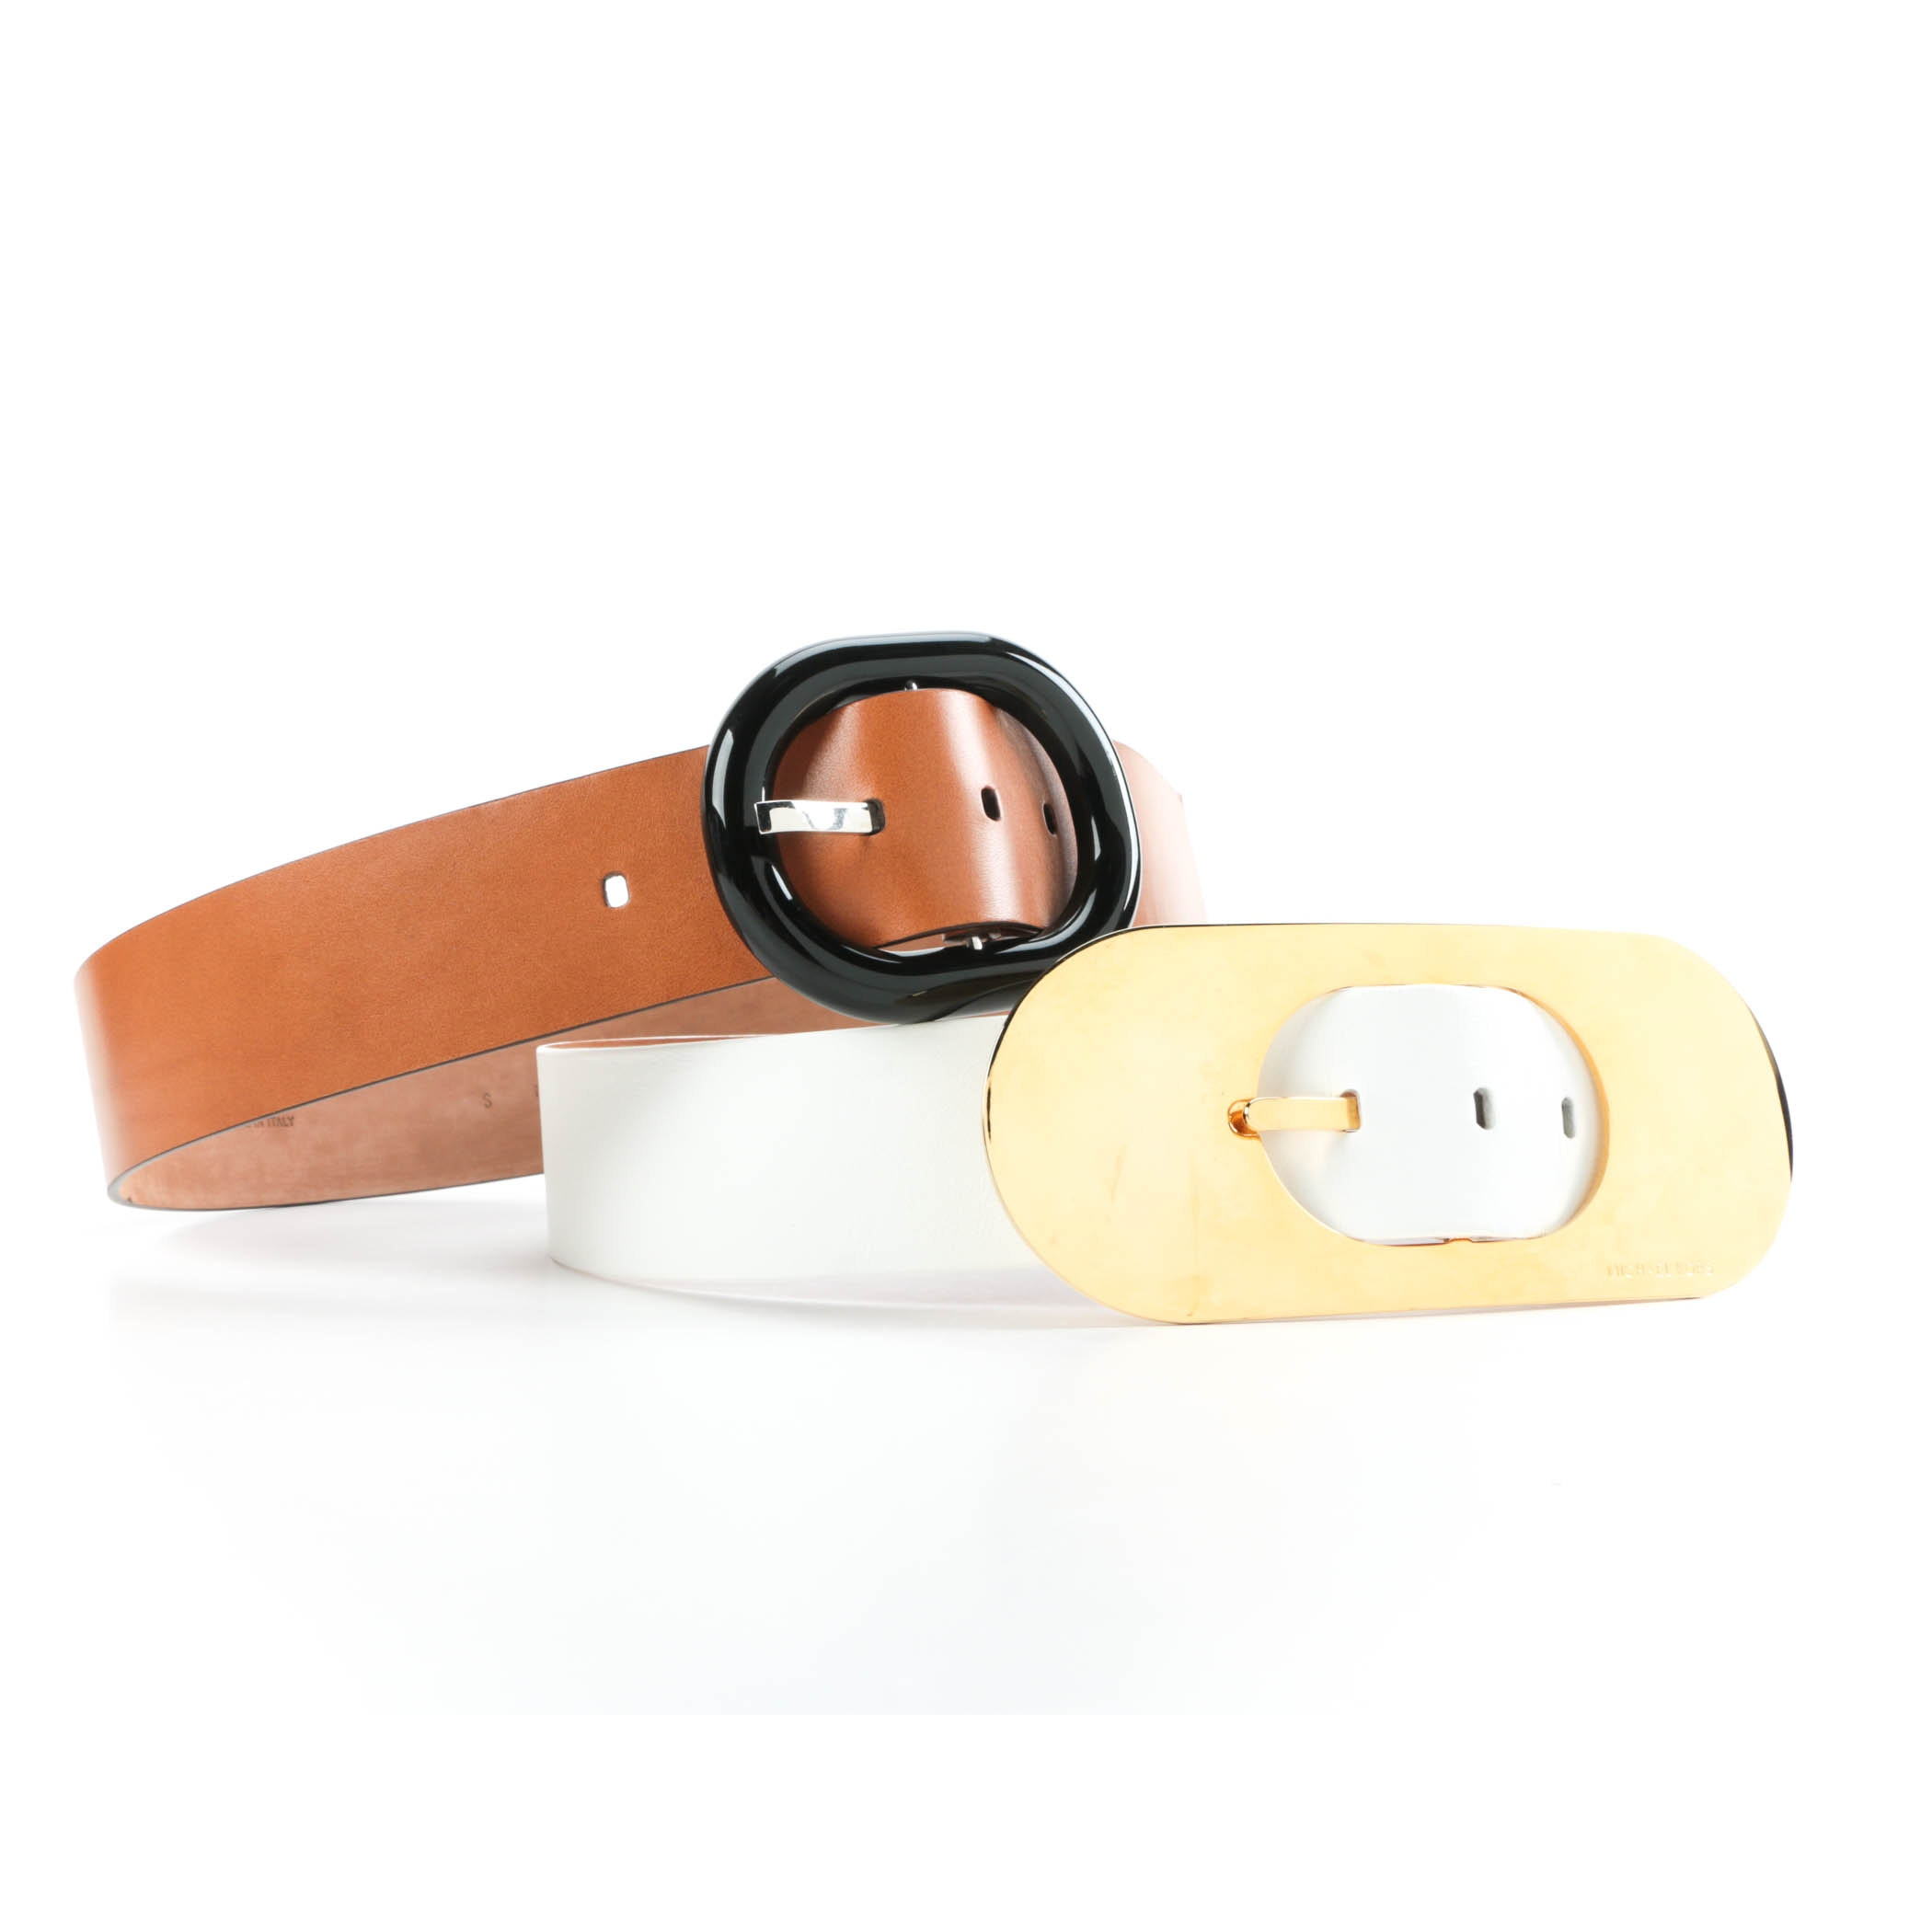 Pair of Michael Kors Leather Belts